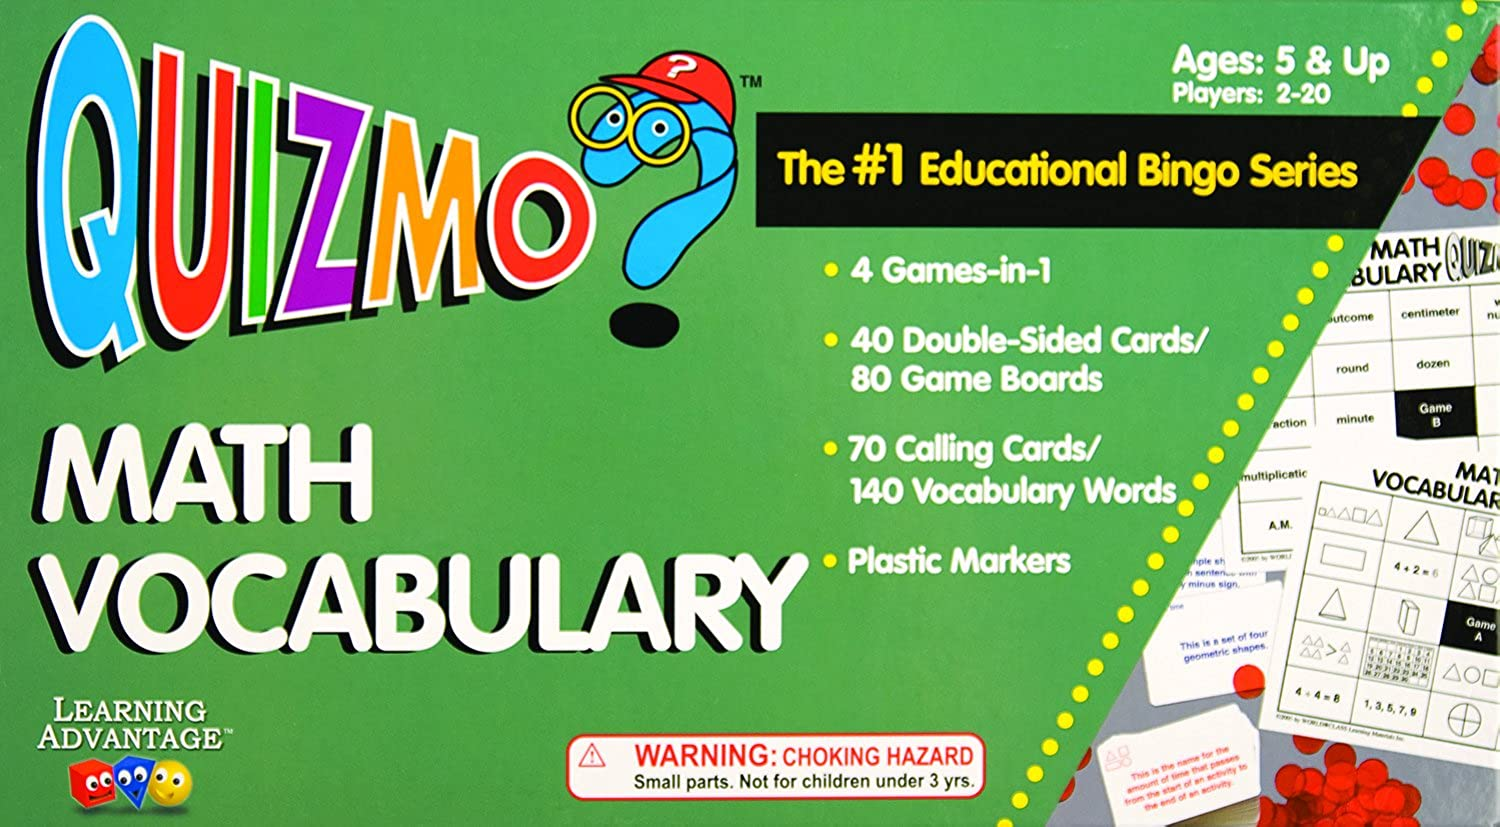 Learning Advantage 8238 Quizmo Math Vocabulary, Grade  2 to 8